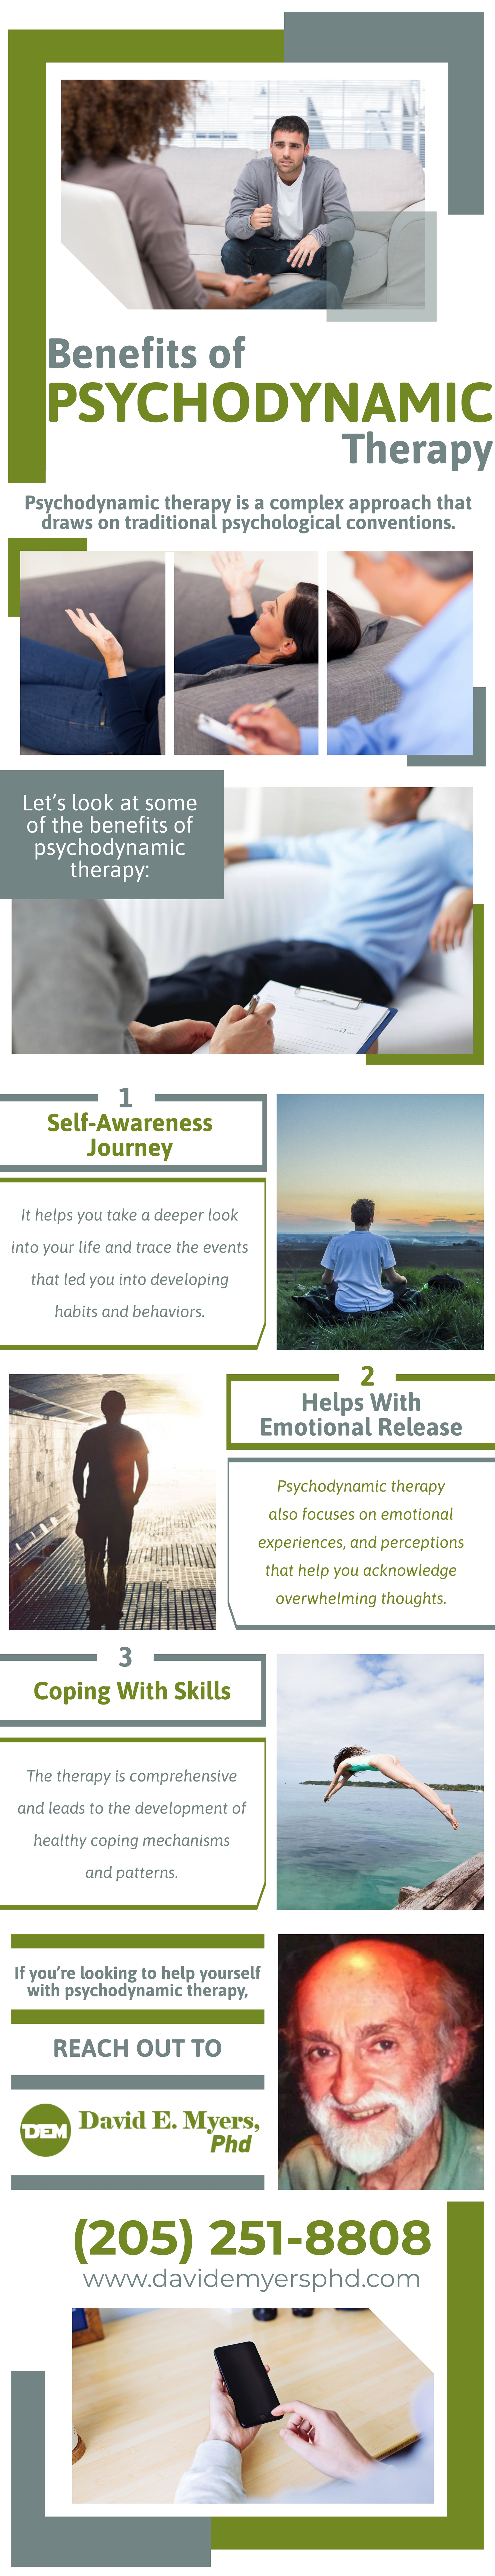 Infographic about psychodynamic psychologist